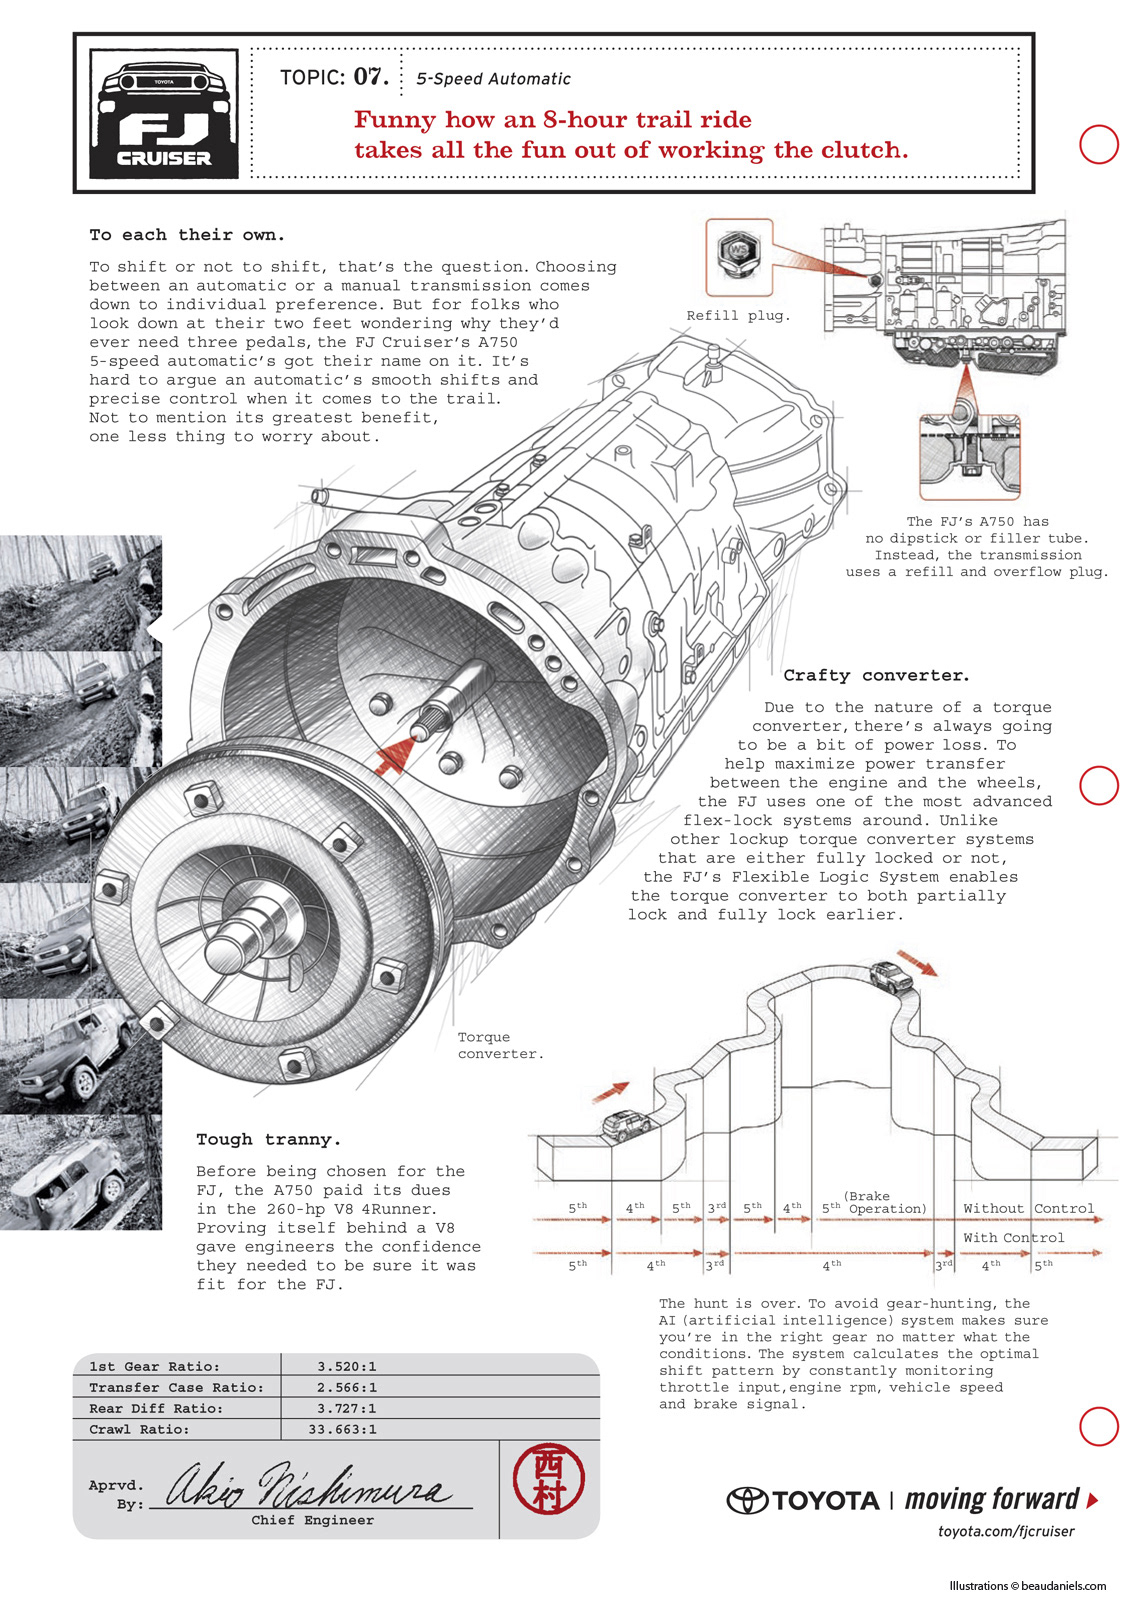 Technical Illustration Beau And Alan Daniels Toyota Fj Cruiser Ads Land Transfer Case Exploded Style Of A 5 Speed